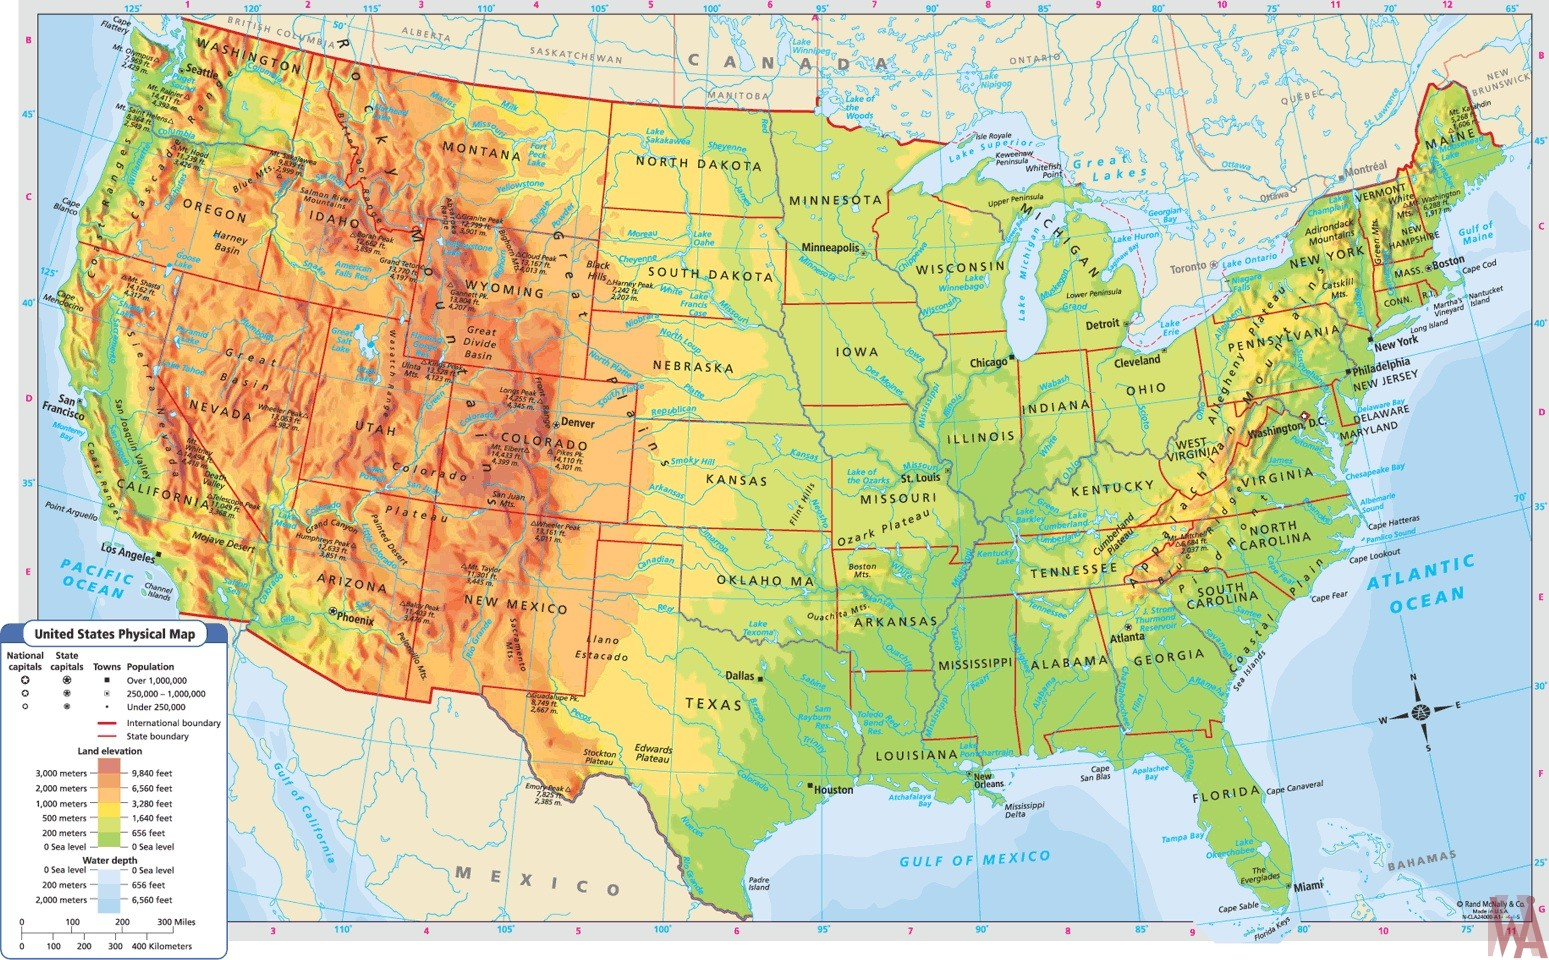 Geographical Map Of United States.Wallmaps Of The United States Whatsanswer